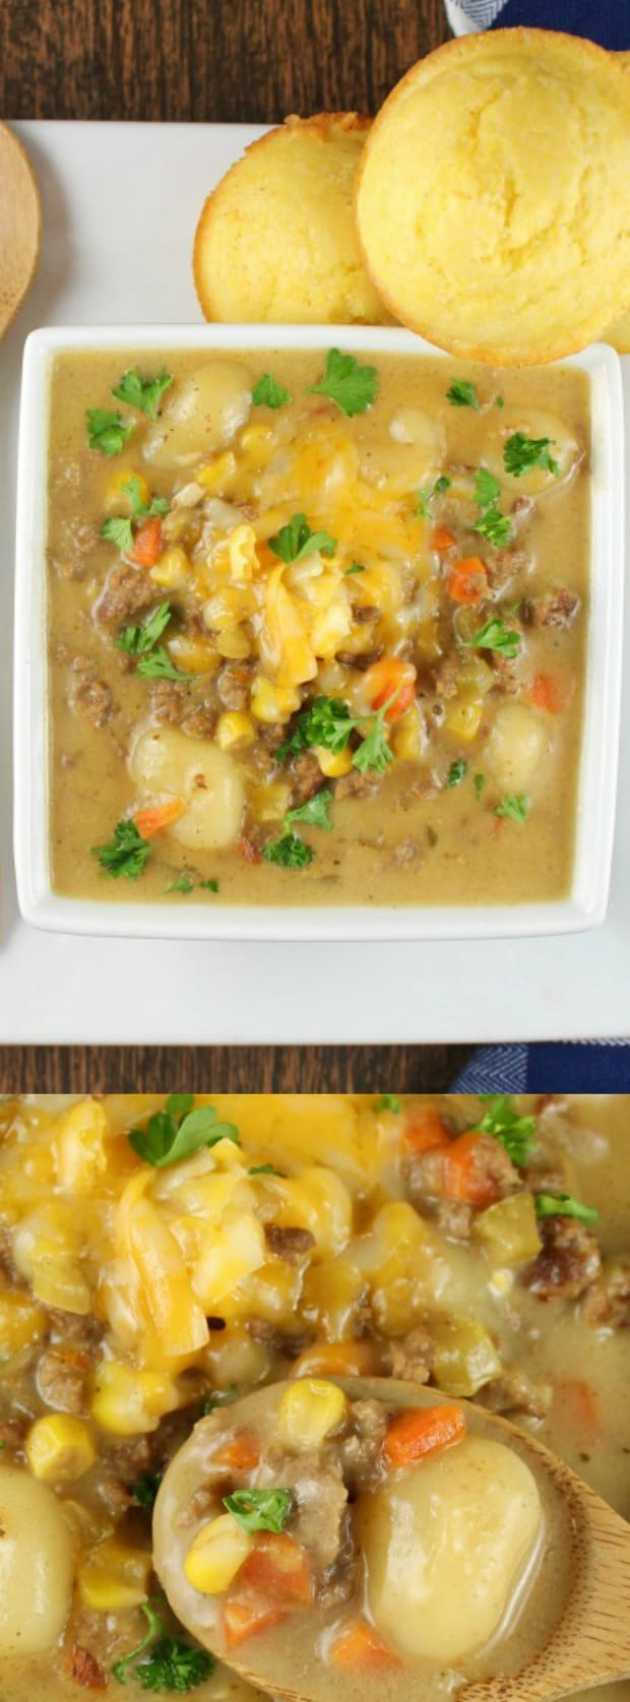 Cheeseburger Gnocchi soup longpin